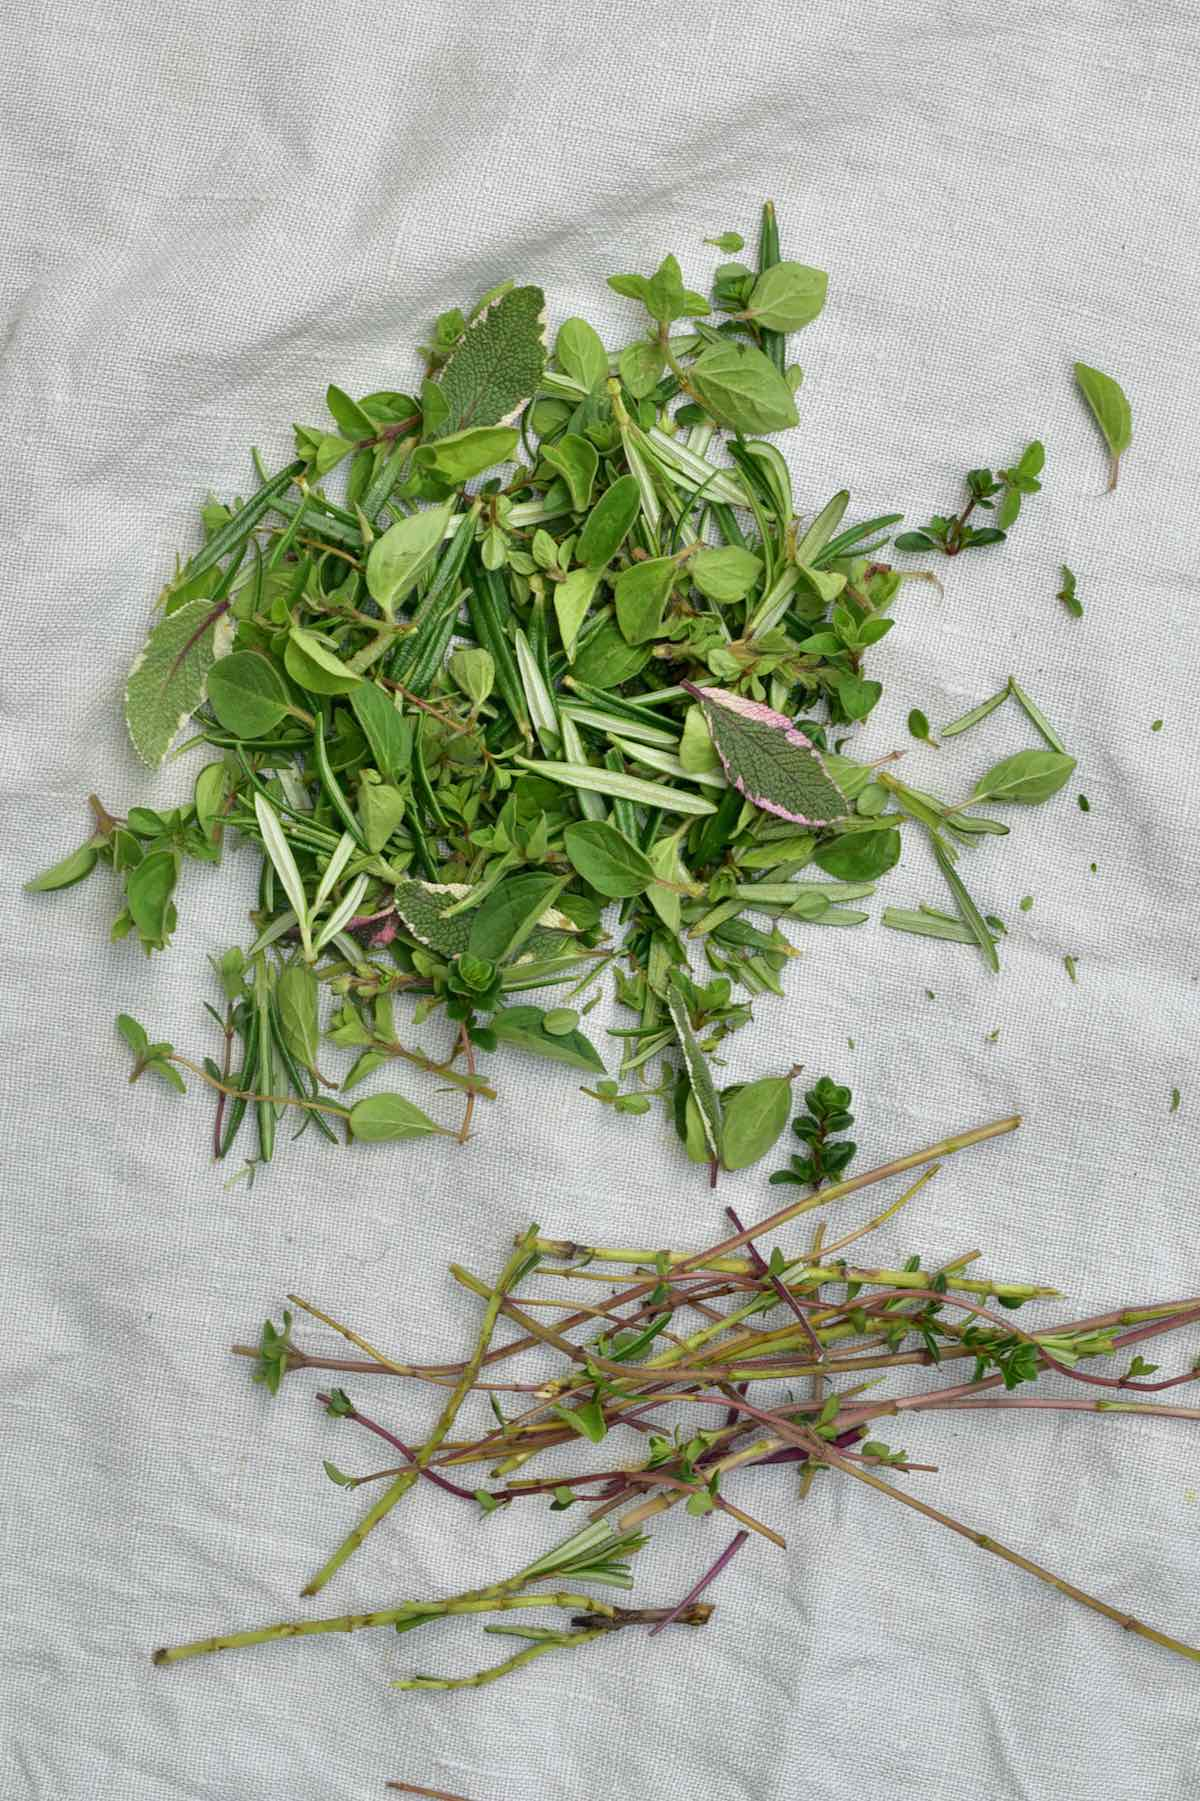 Fresh herbs with removed stems